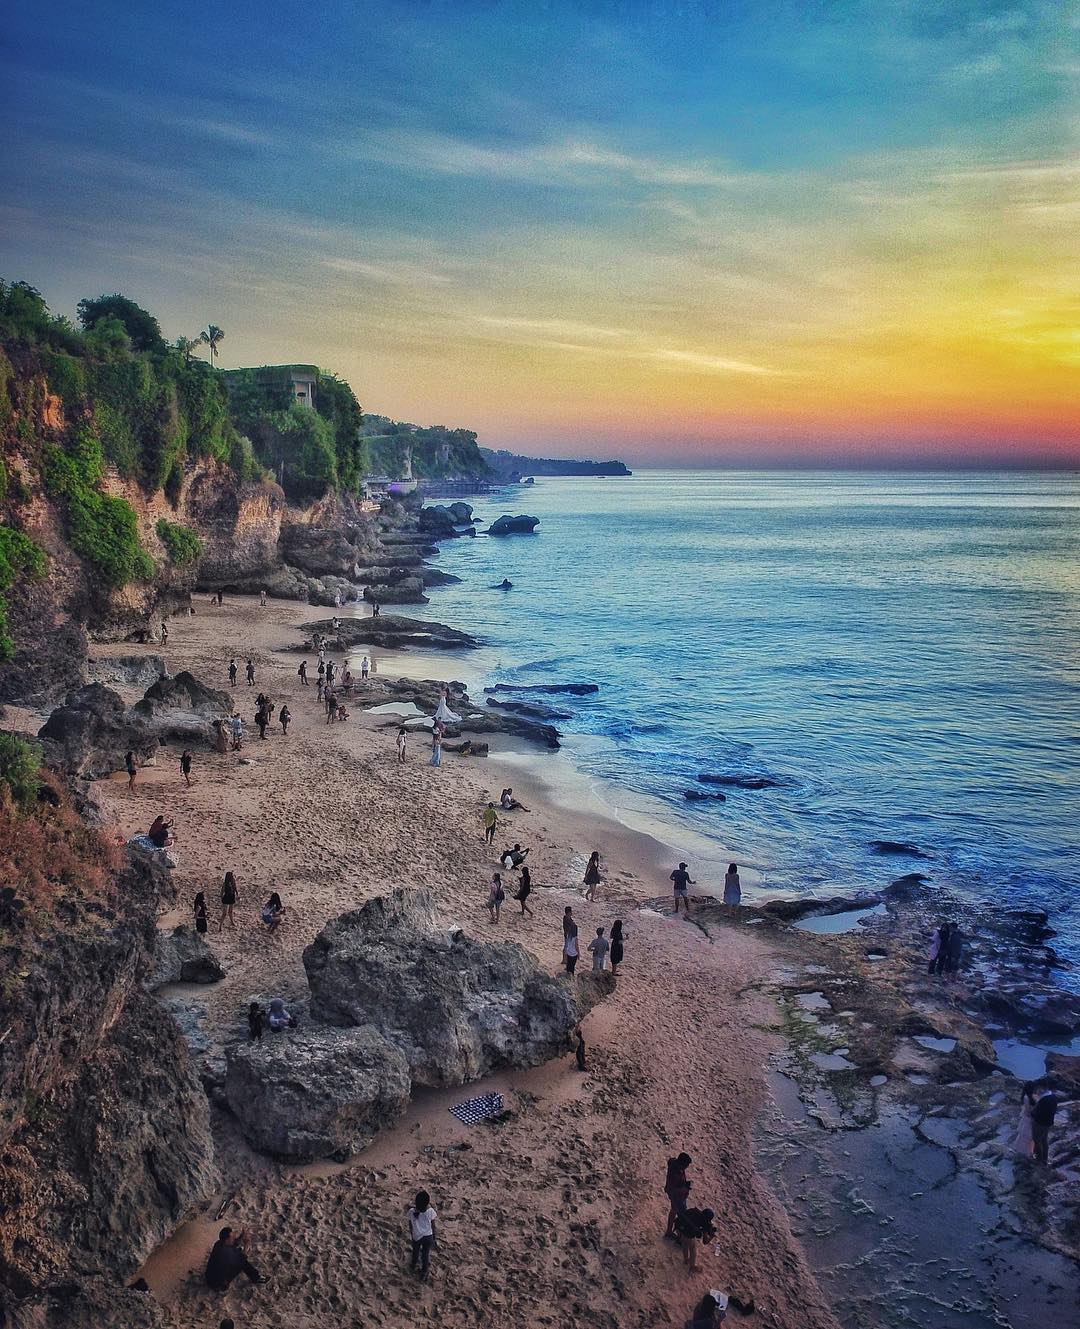 7. Tegal Wangi Bali hidden beach! via @rakaontrip